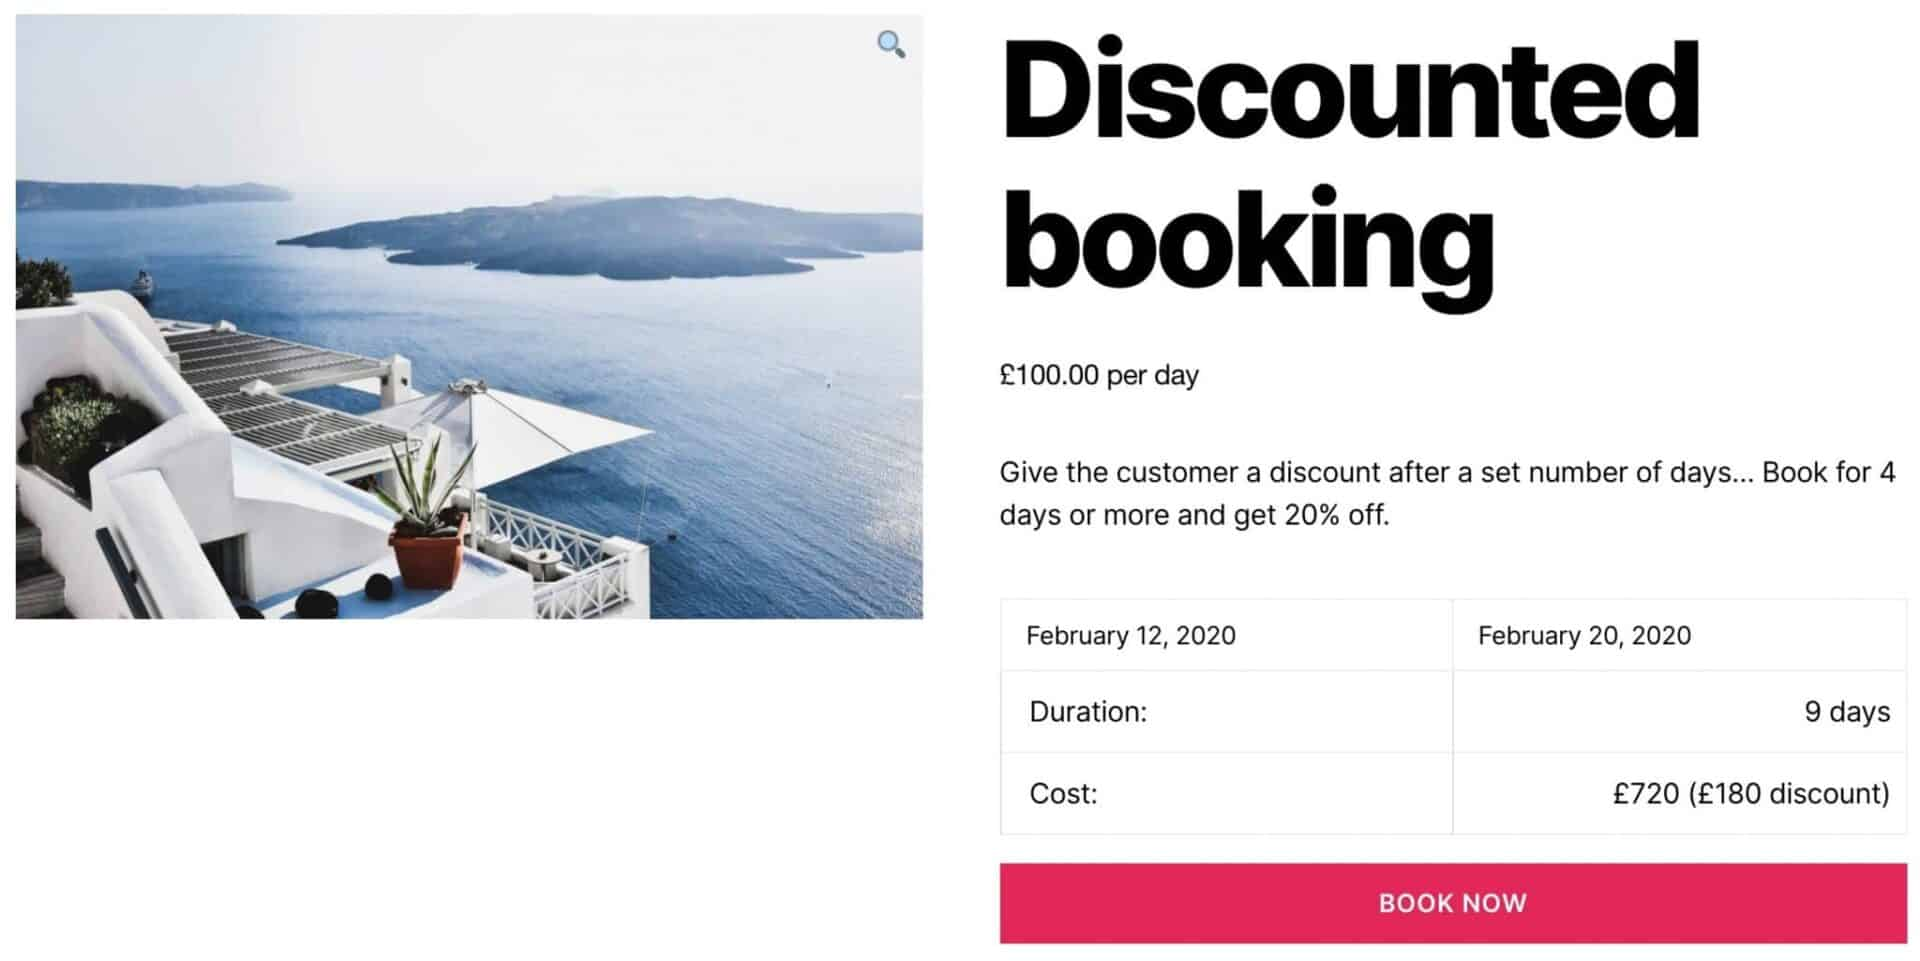 WooCommerce bookable product with discount